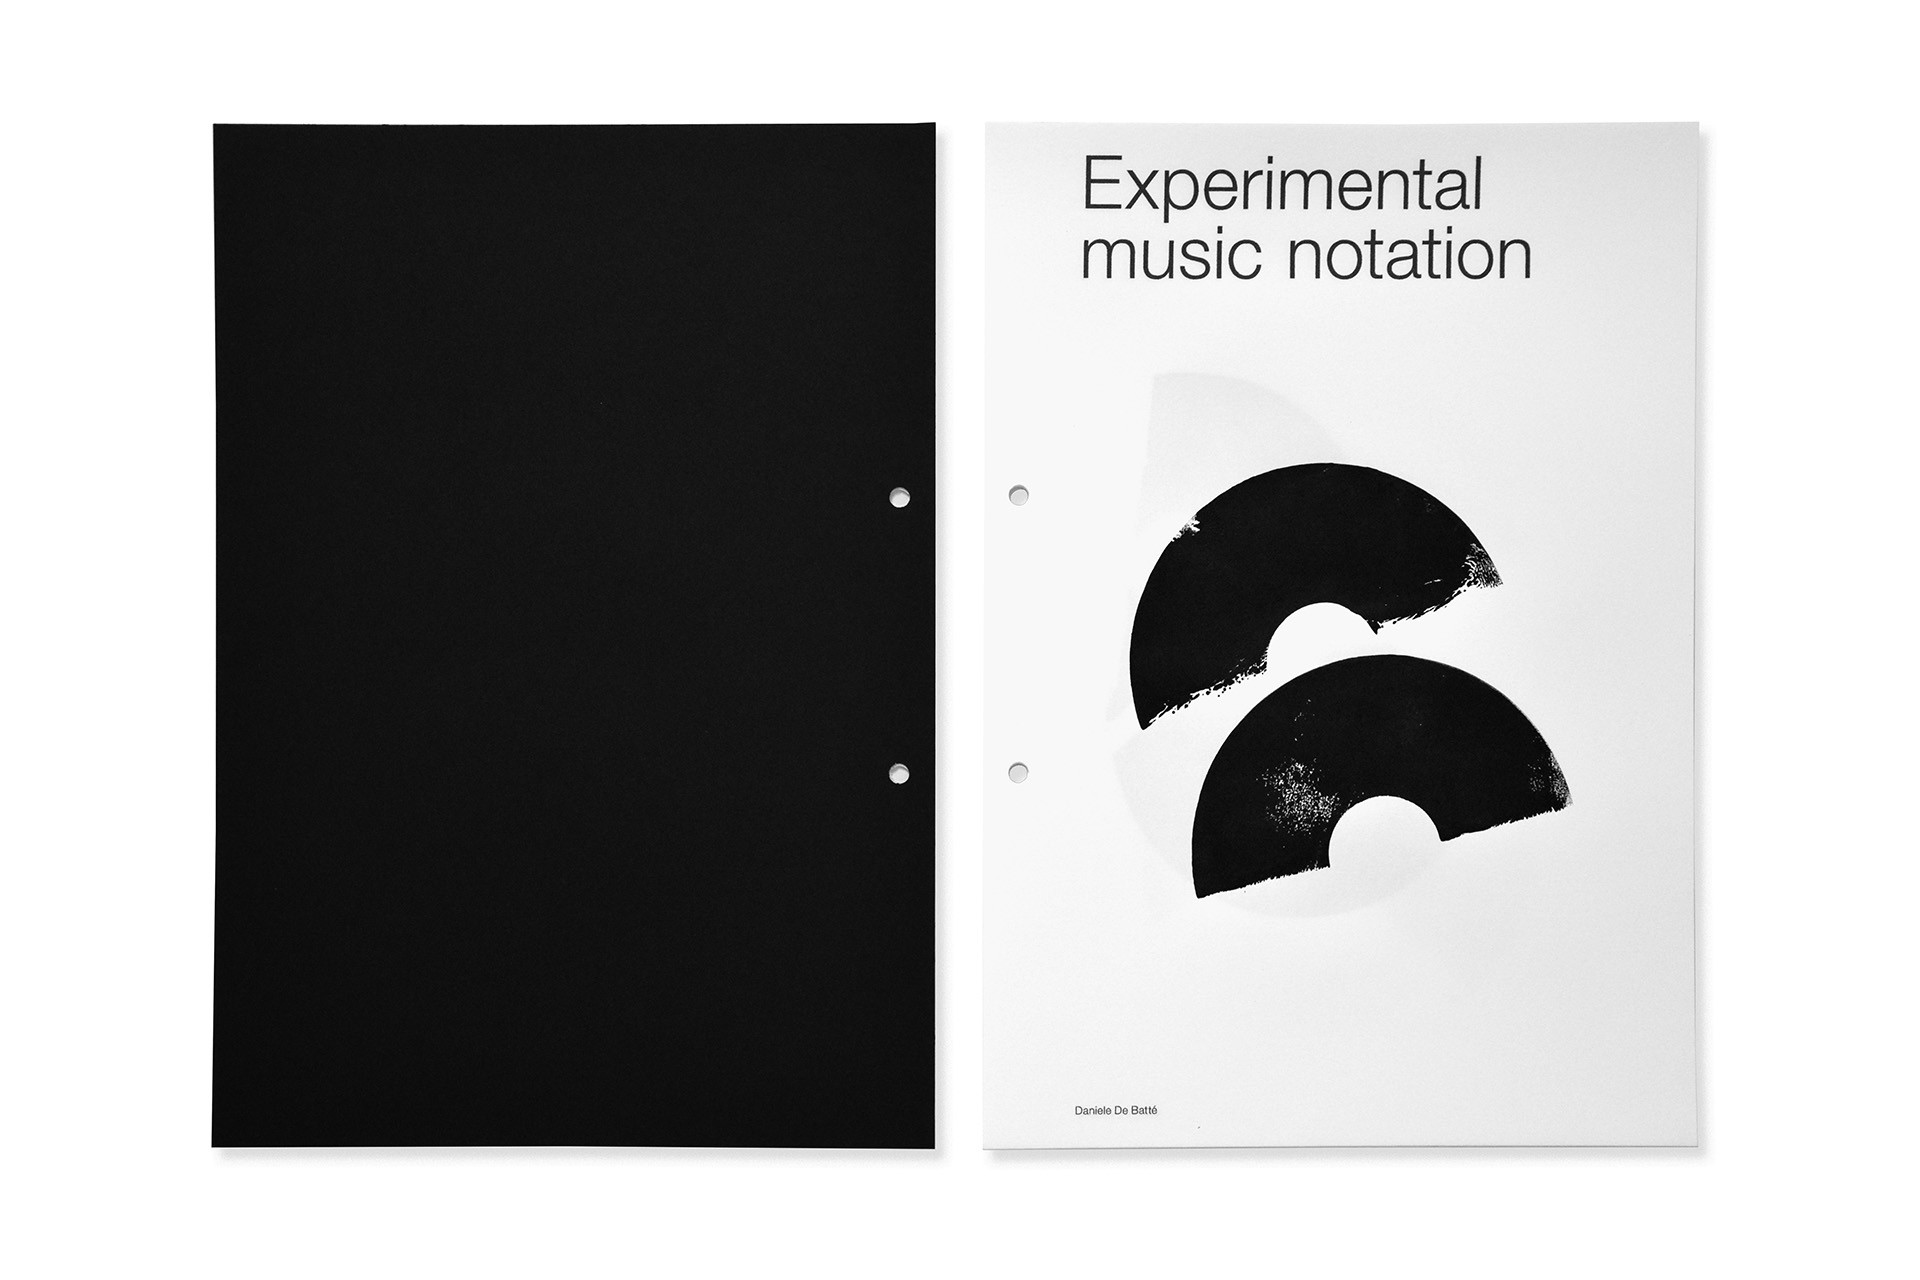 DDB Experimental music notation 26.6.2016